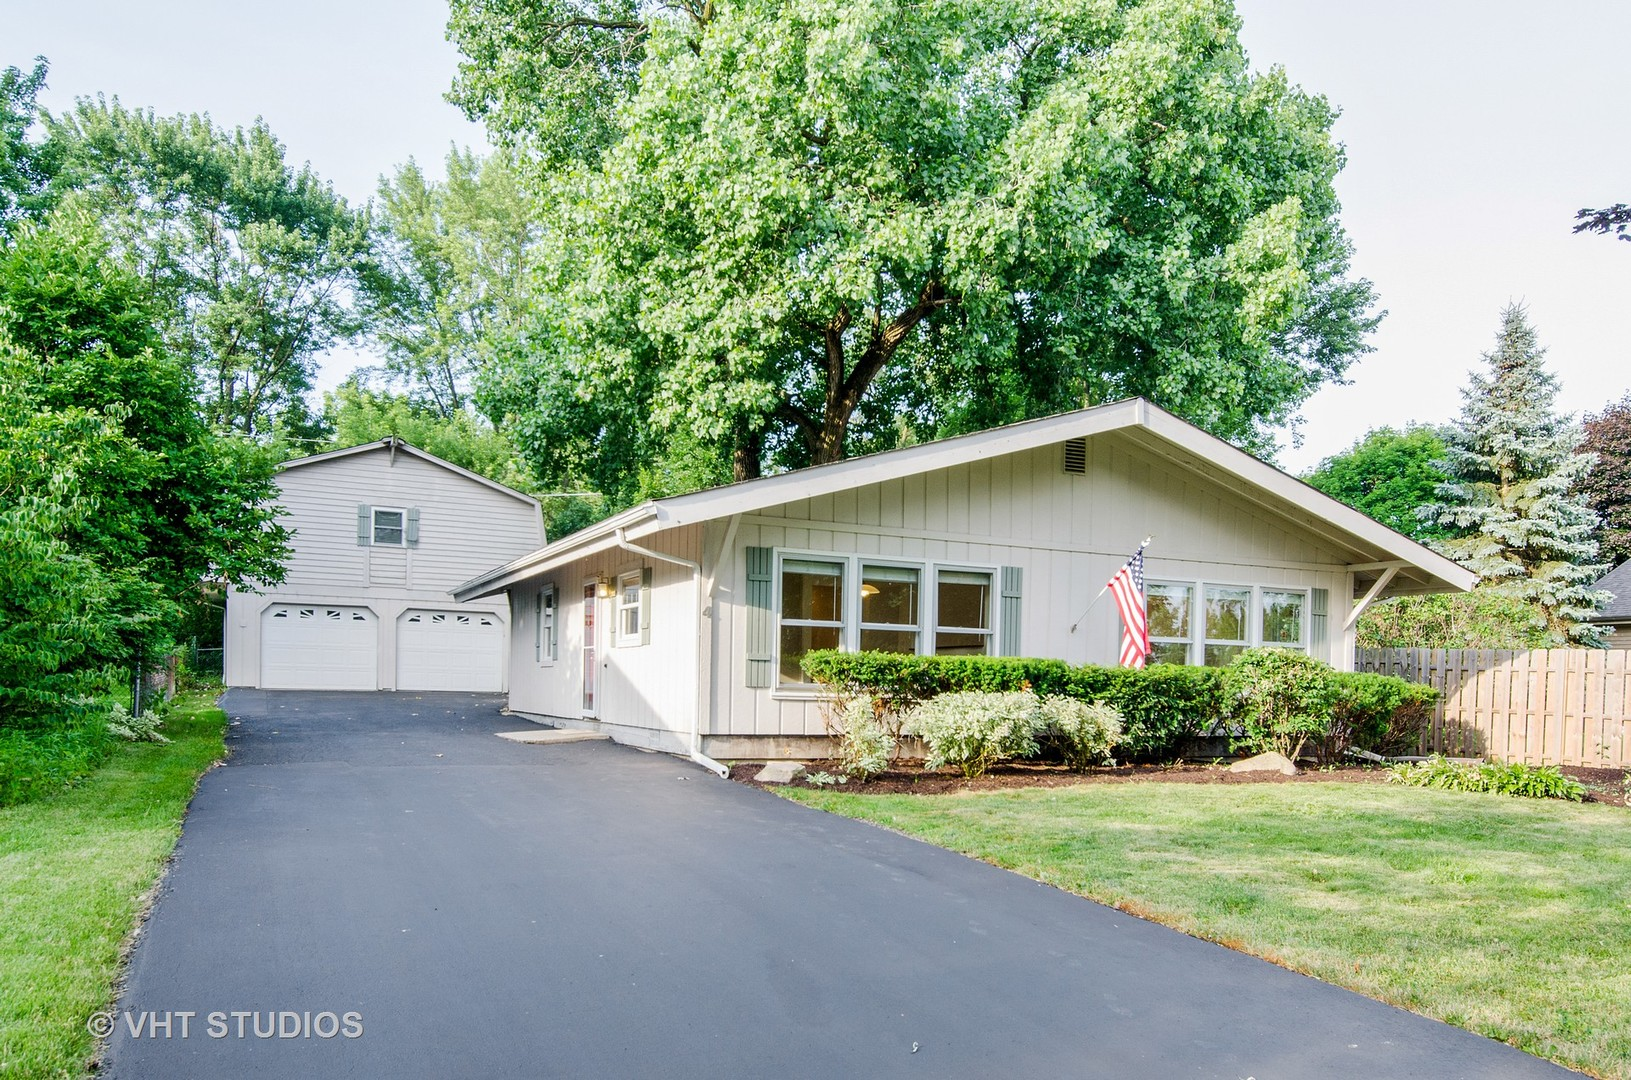 lake in the hills gay singles View details of this 3/2 single family home located in lake in the hills, il this for sale by owner single family home features 3 bedrooms, 2 bathrooms, a 2 car garage and is located in the.